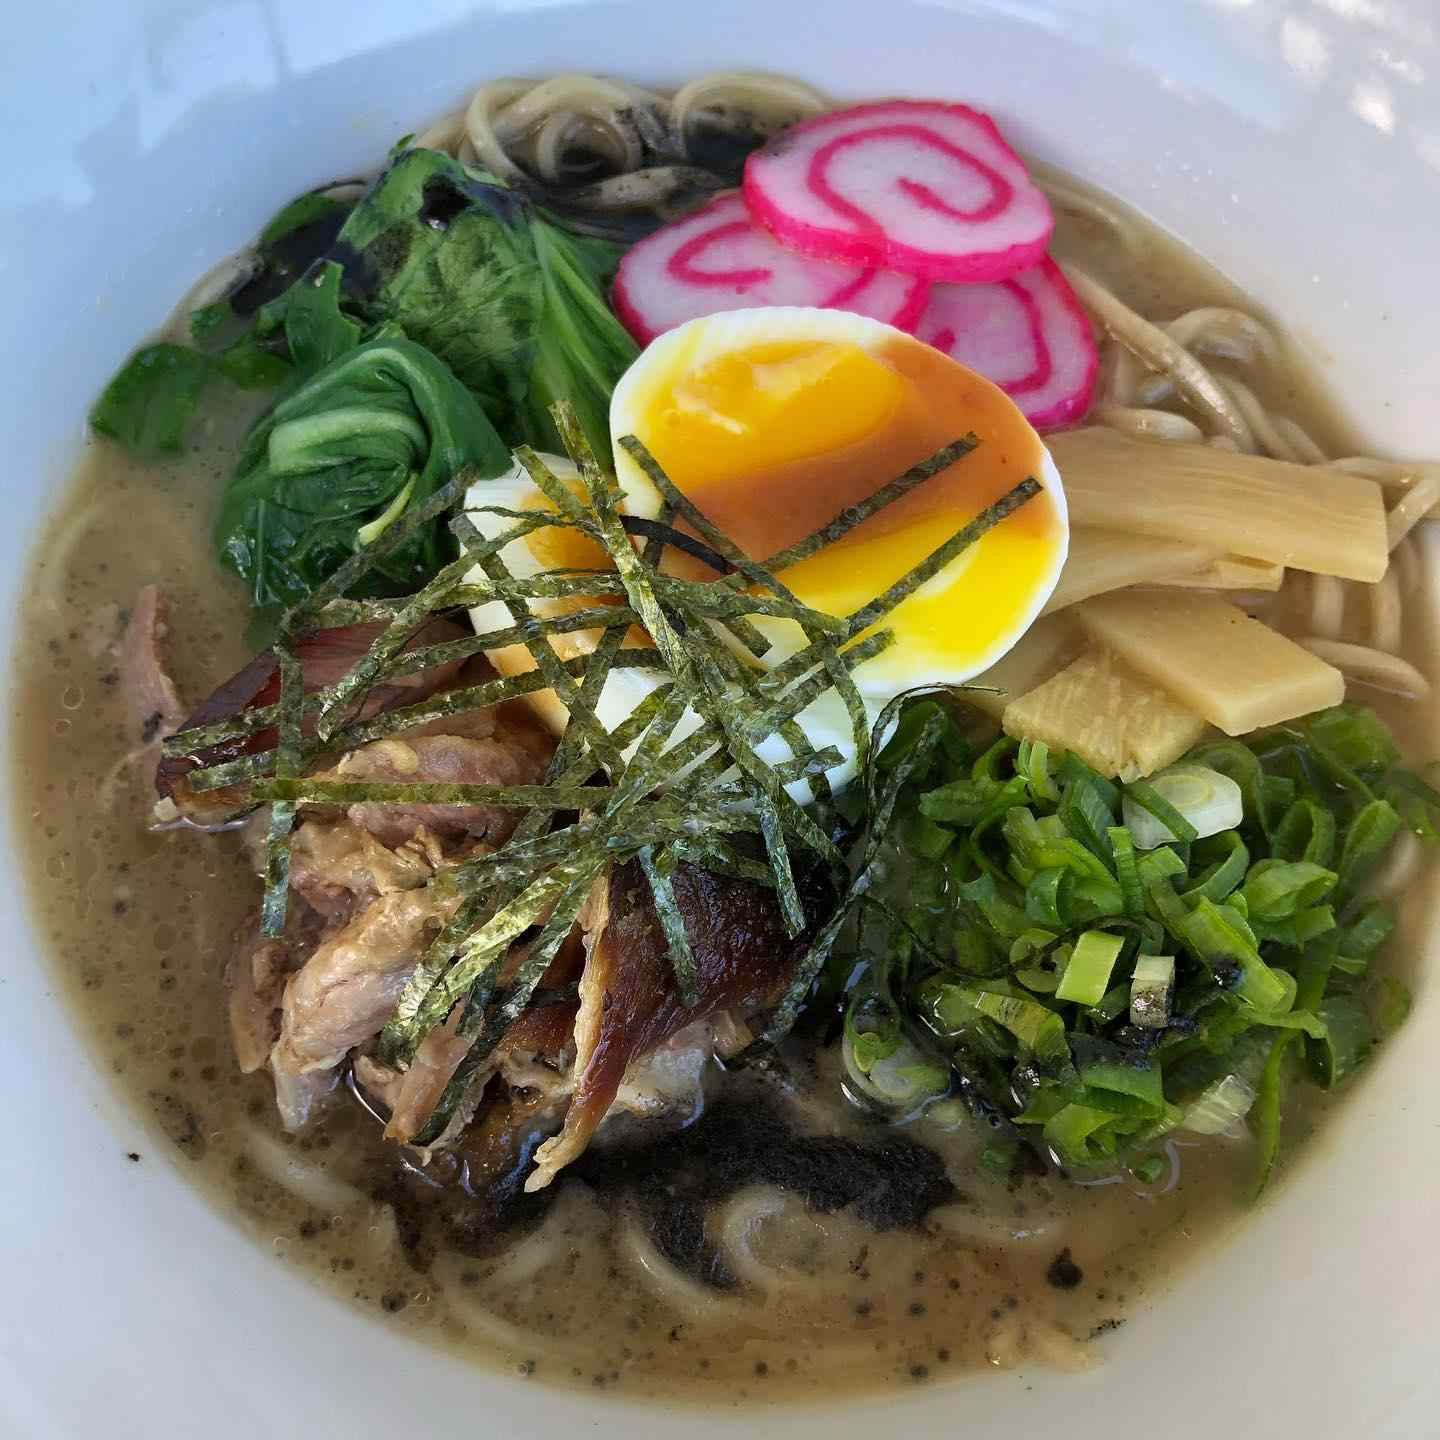 bowl of ramen from Star Noodle with a soft boiled egg, bamboo shoots, chopped scallions, red and white fish cake, bok choy, pork and shredded nori